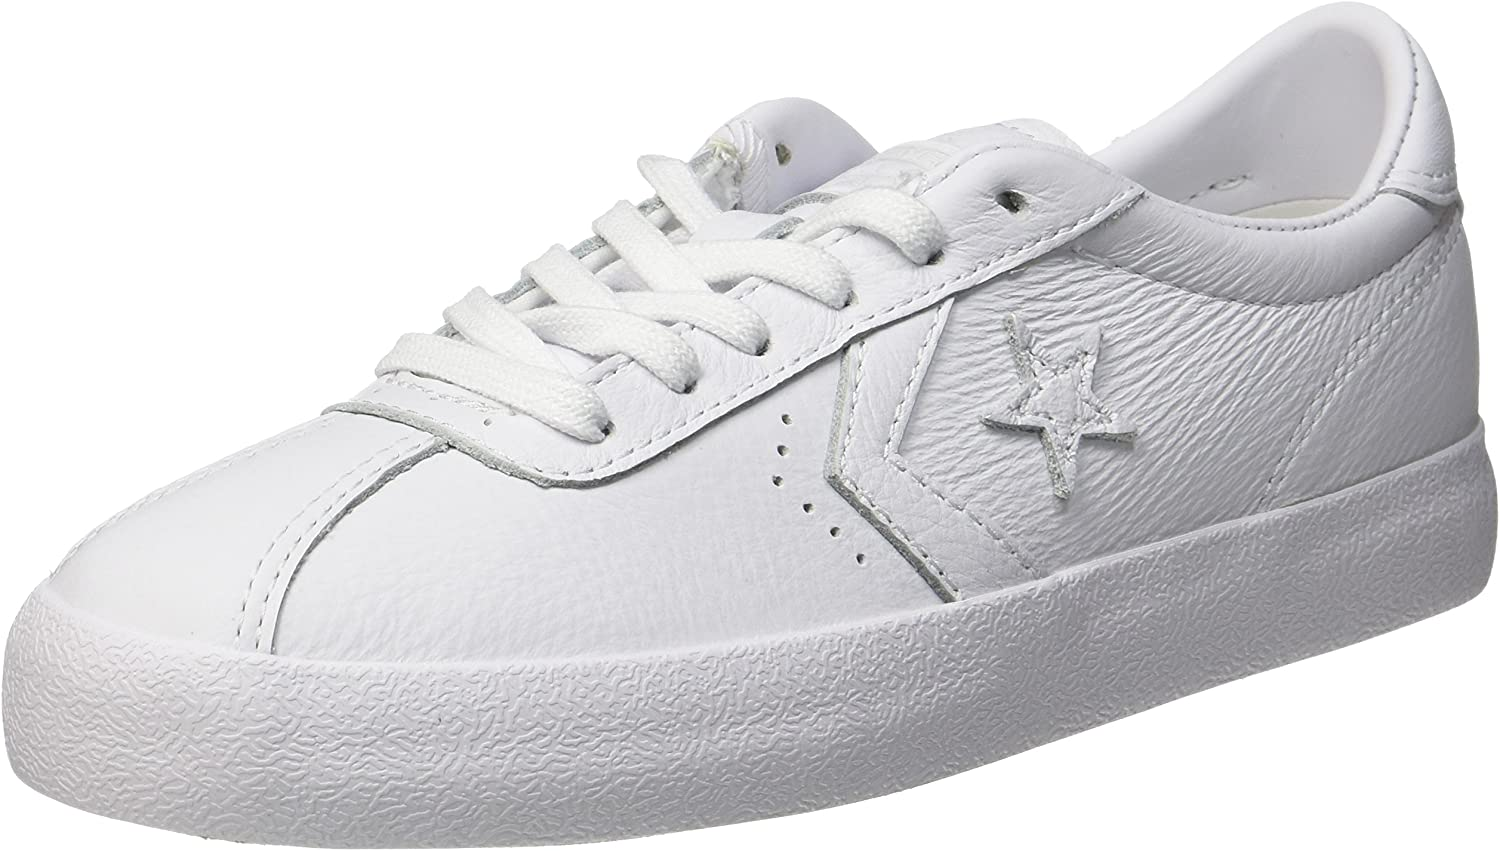 Converse Breakpoint OX Unisex Adults' Low-Top Sneakers, White (White White White), 10.5 UK (46 EU)